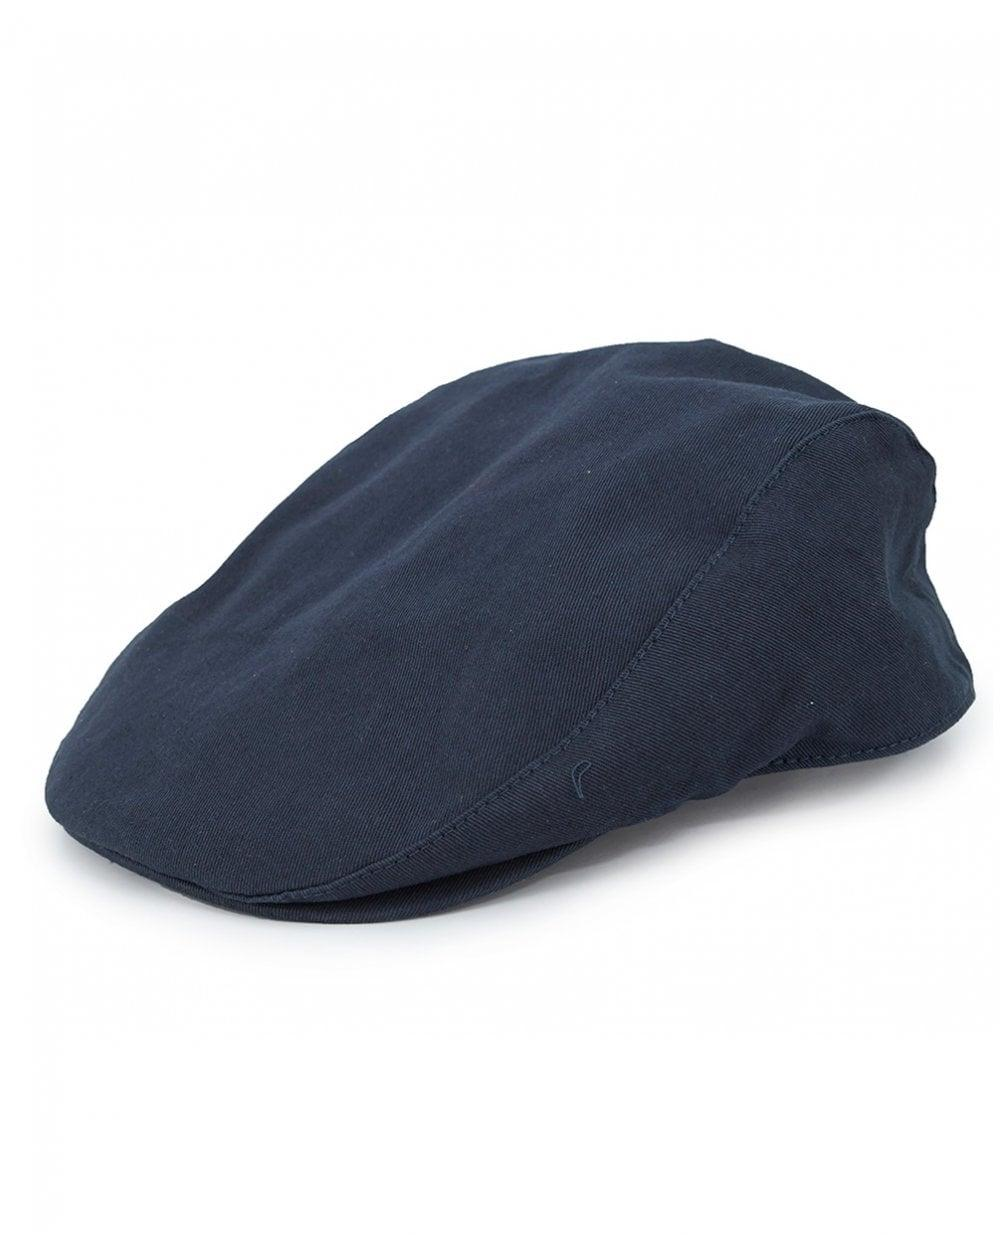 6d1901c3a7e Lyst - Barbour Finnean Flat Cap in Blue for Men